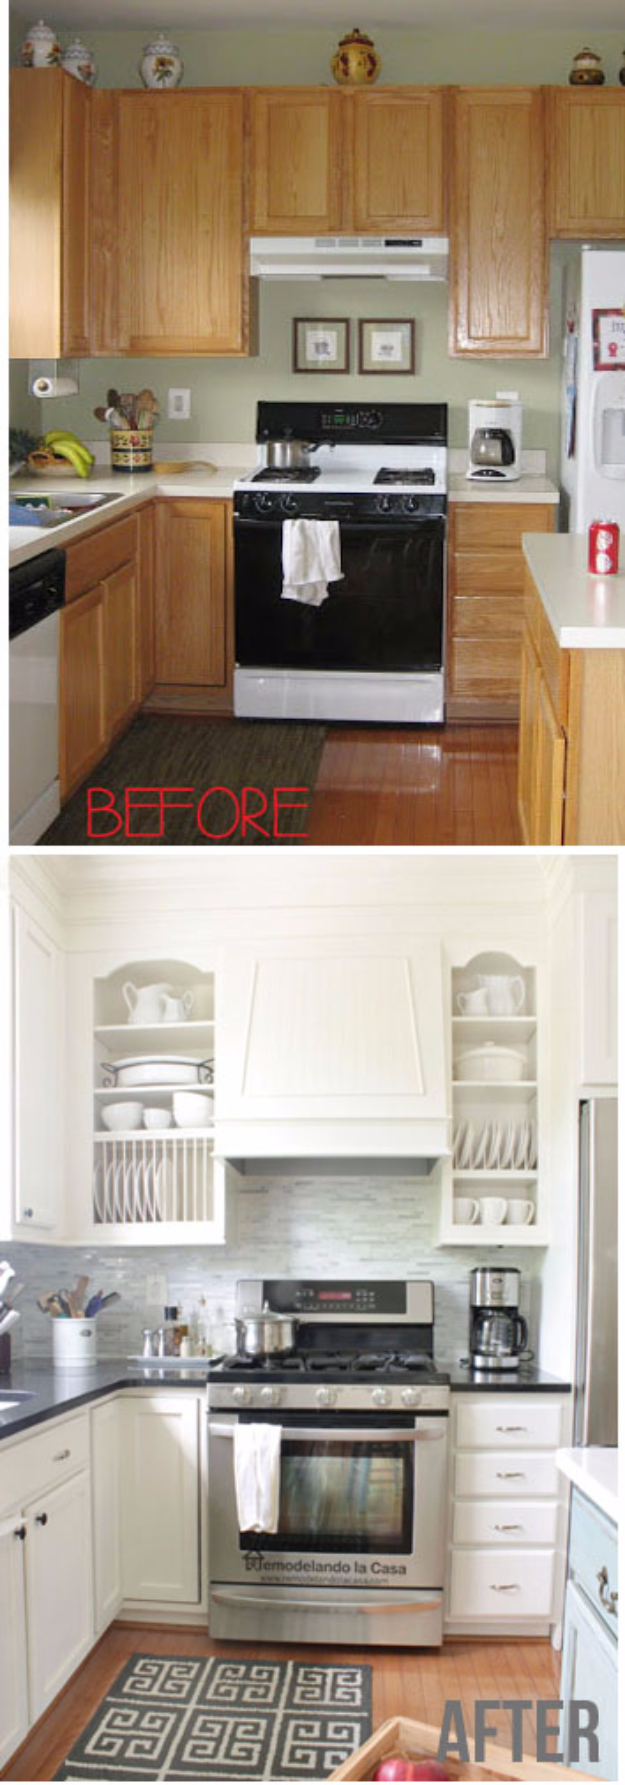 37 Simple Diy Kitchen Makeover Ideas